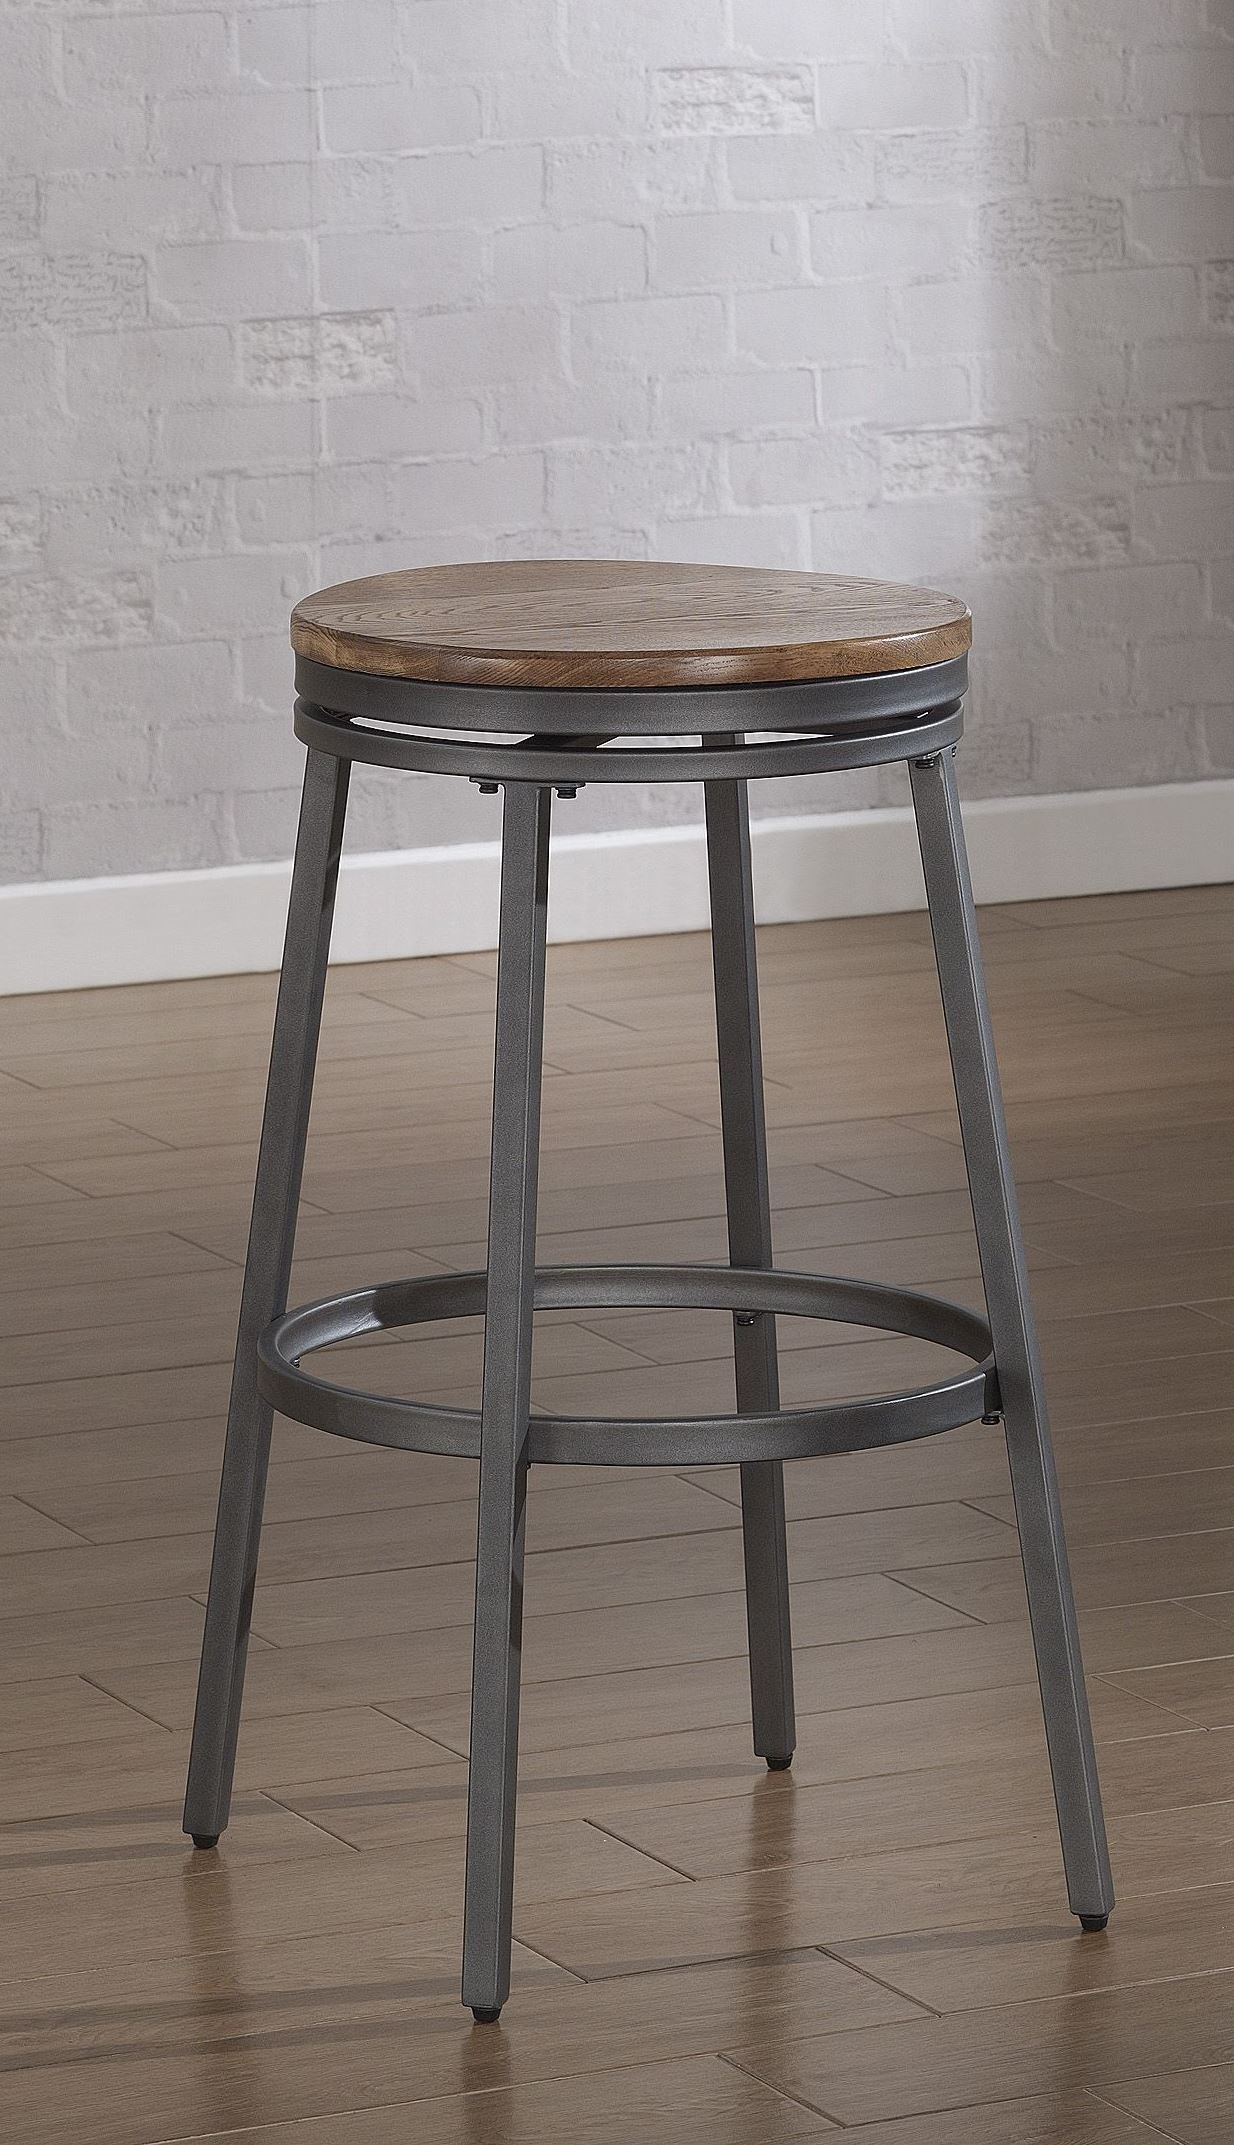 B1 100 25W Metal Frame Backless Bar Stool from American  : 100stool 11 from colemanfurniture.com size 1234 x 2145 jpeg 528kB